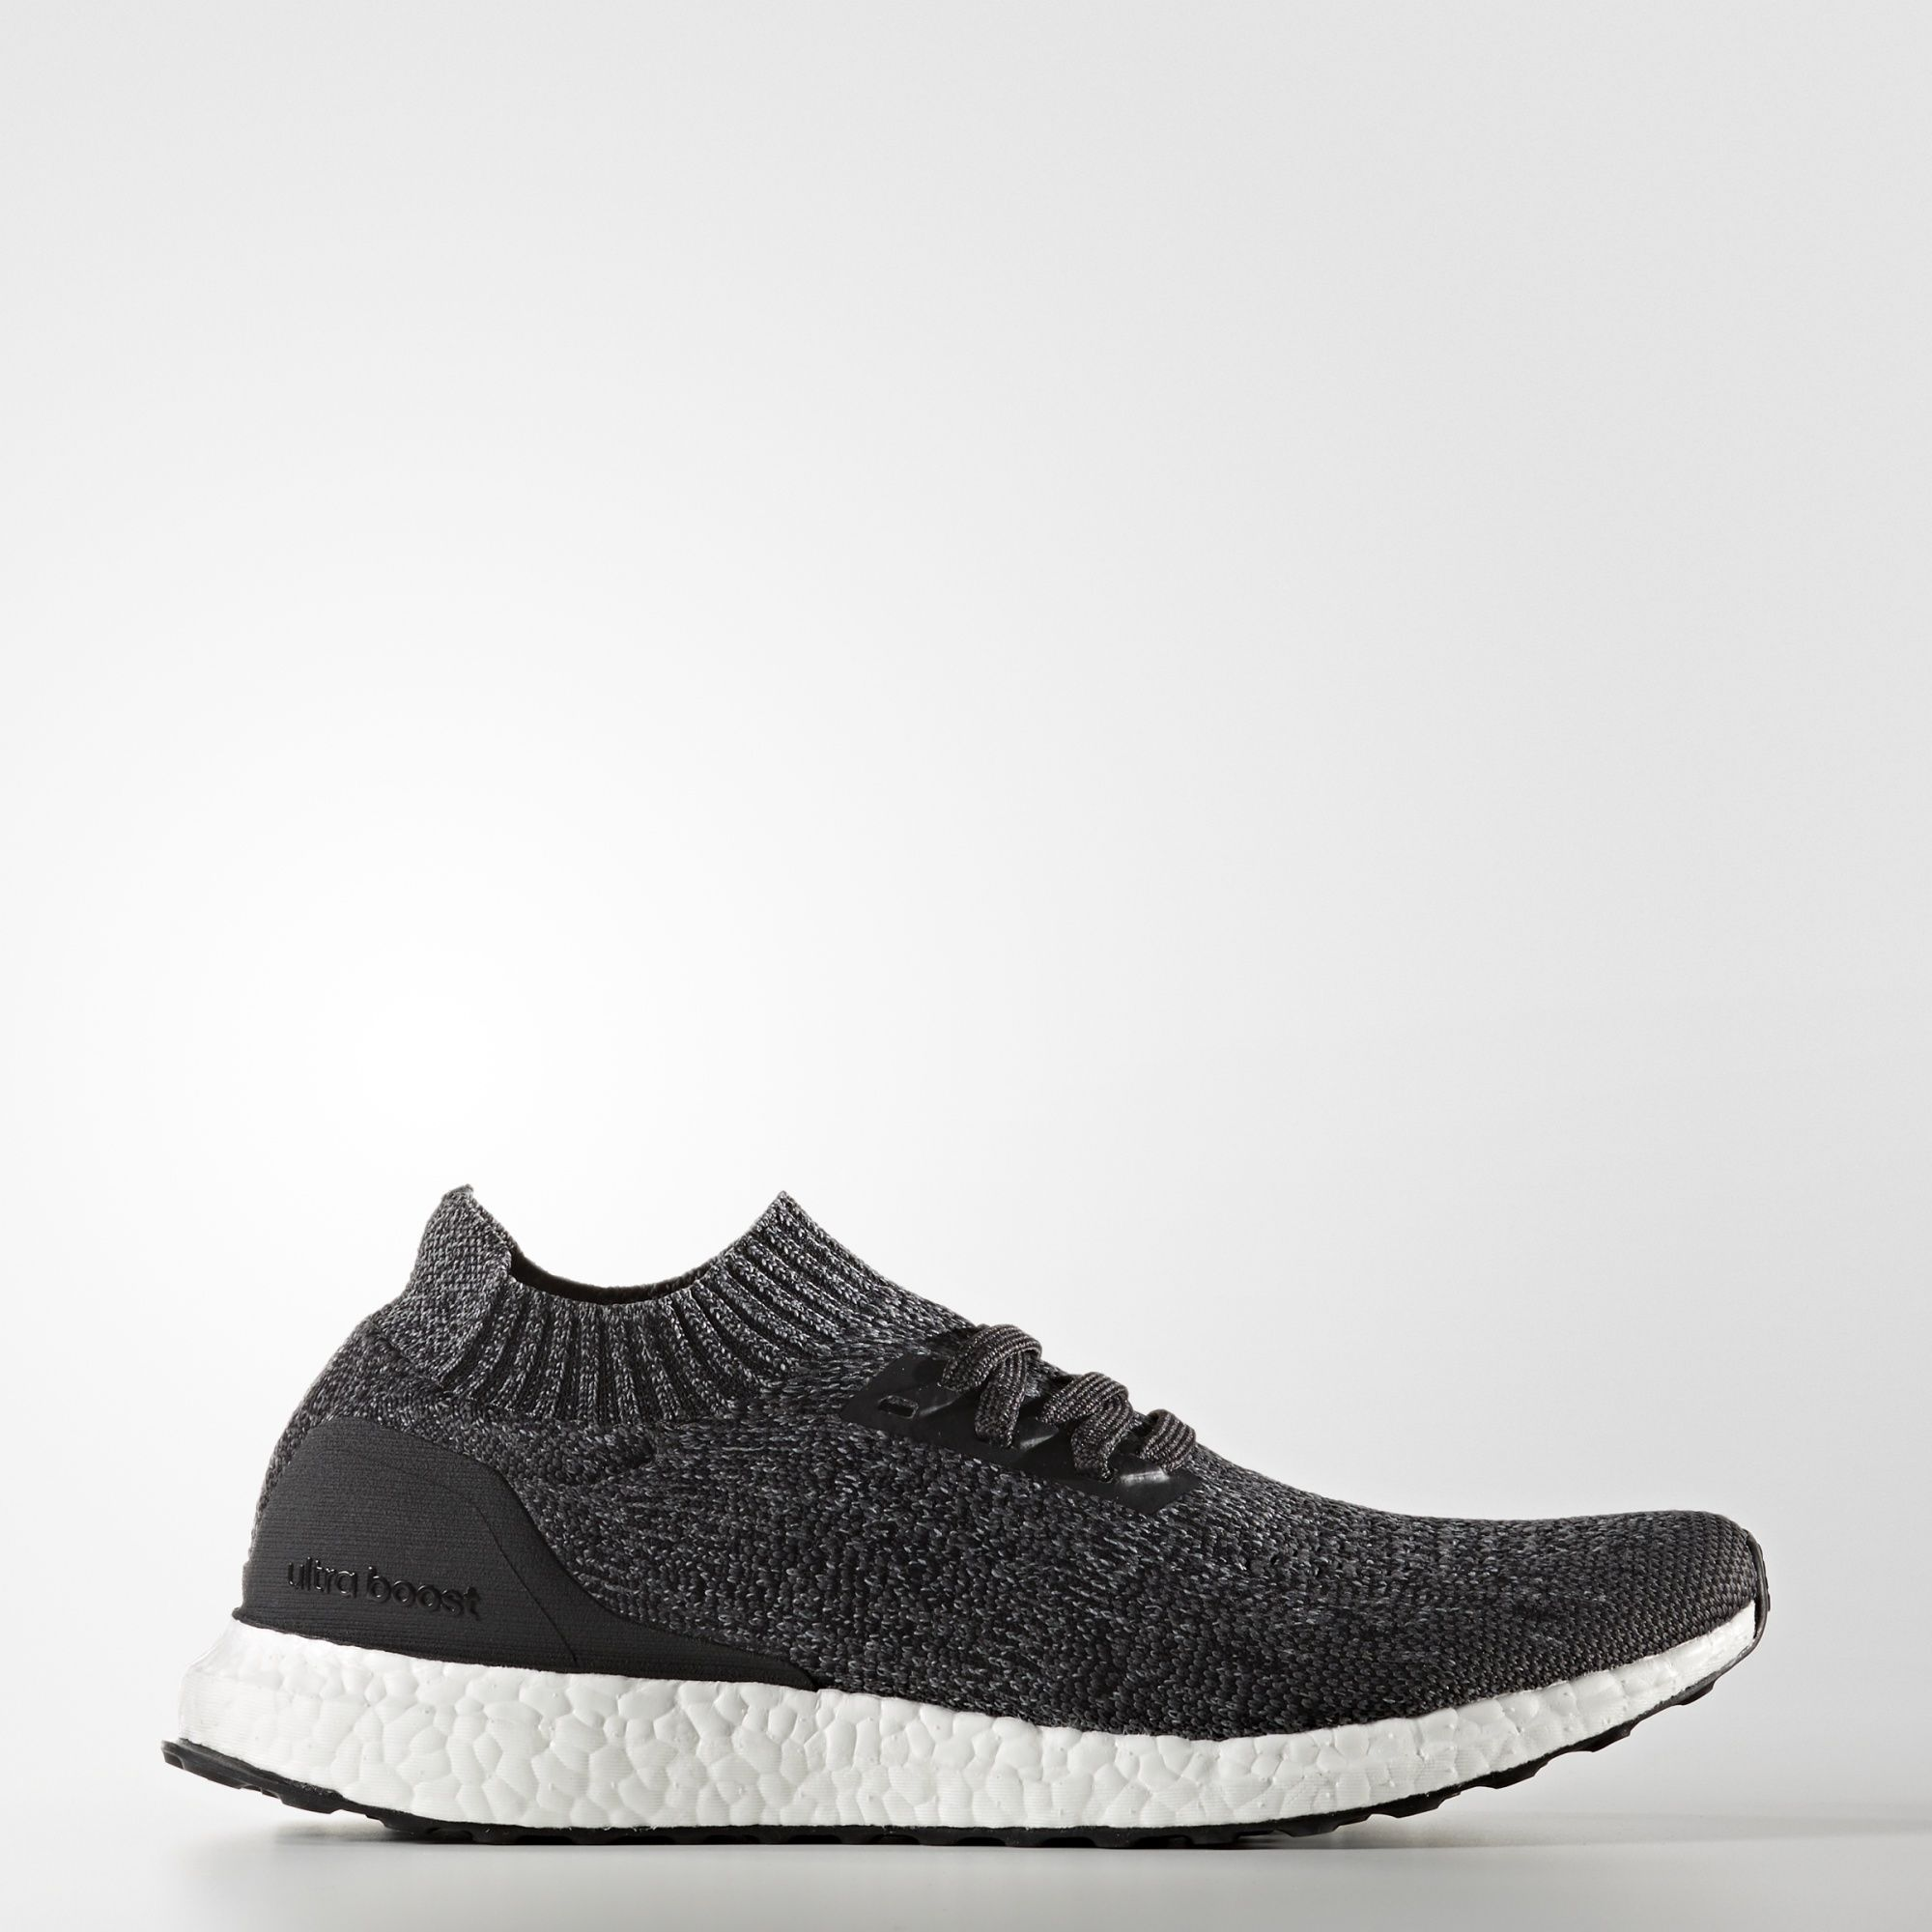 info for 5238f f51d2 adidas ultra boost uncaged black grey three adidas ultra boost womens  running shoes olive green